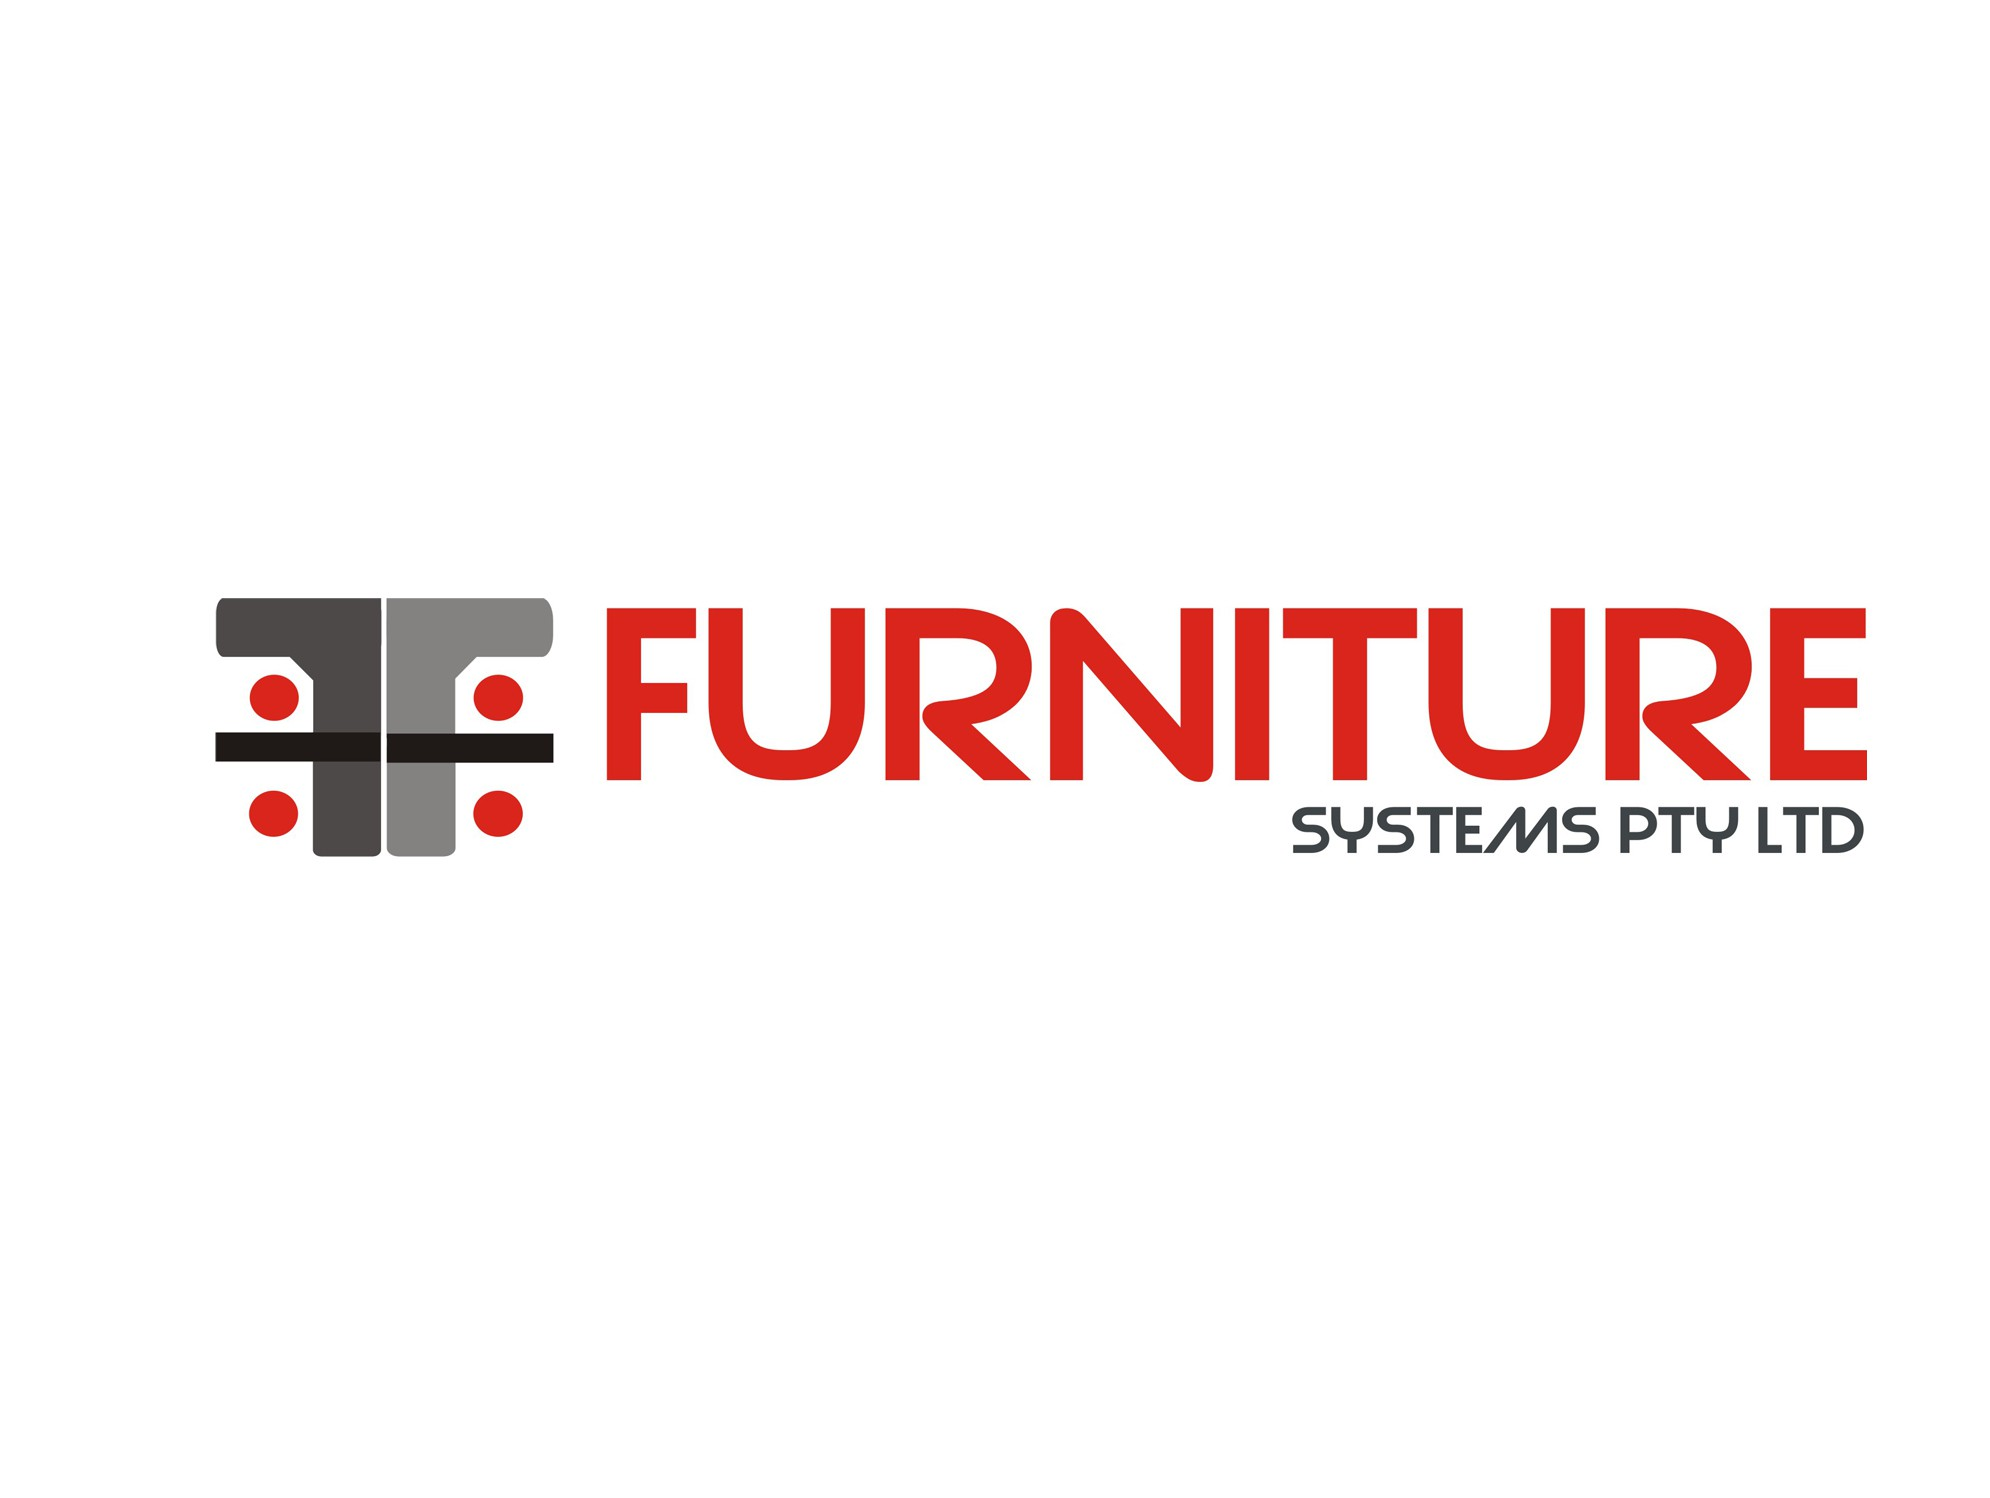 Furniture Systems Pty Ltd needs a new logo